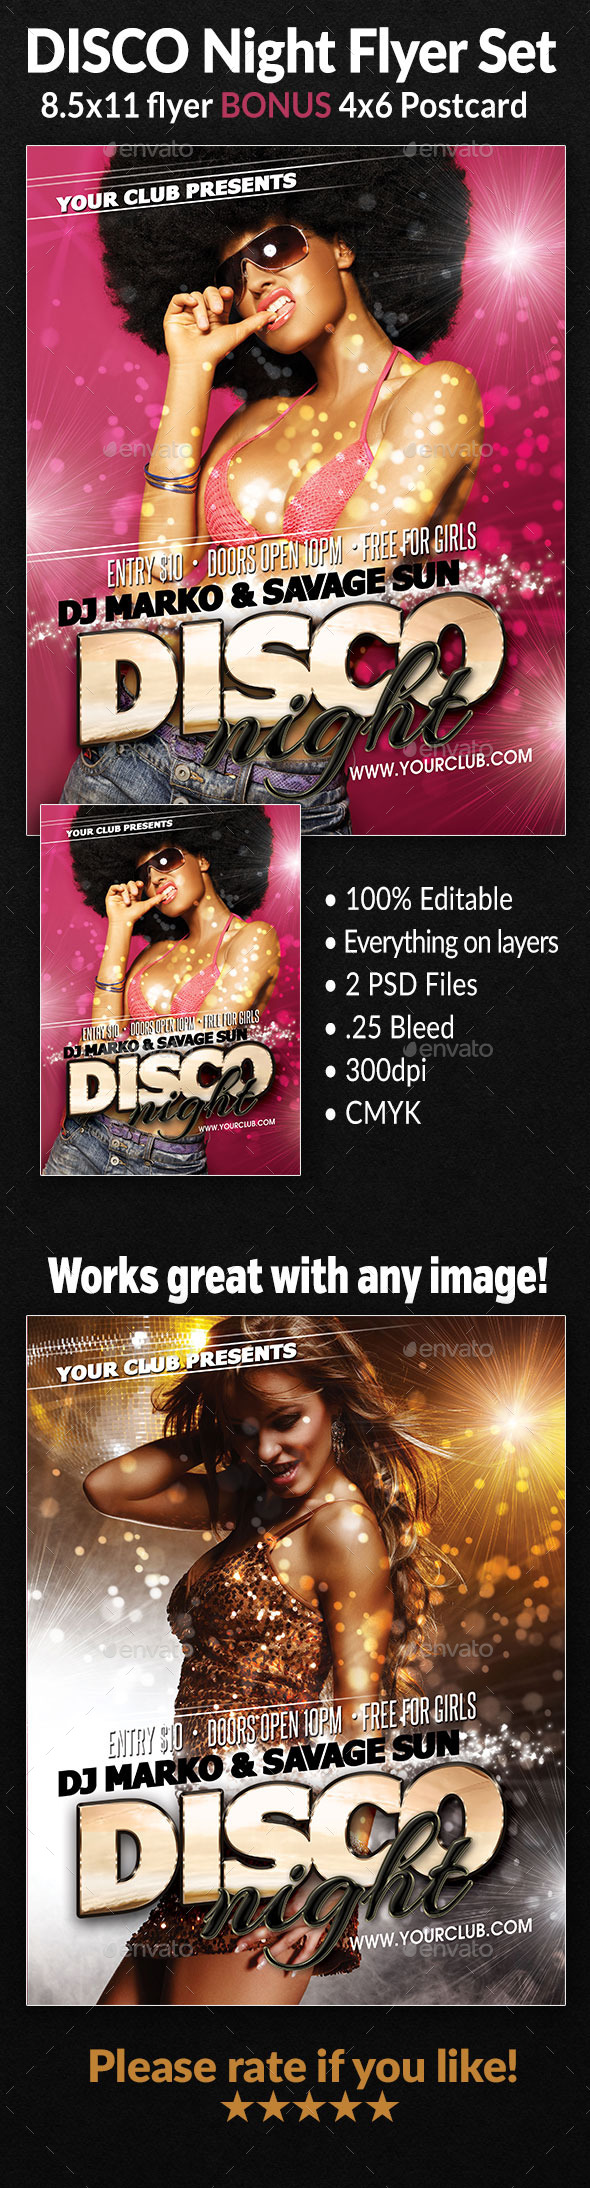 Disco Night Flyer Set - Clubs & Parties Events